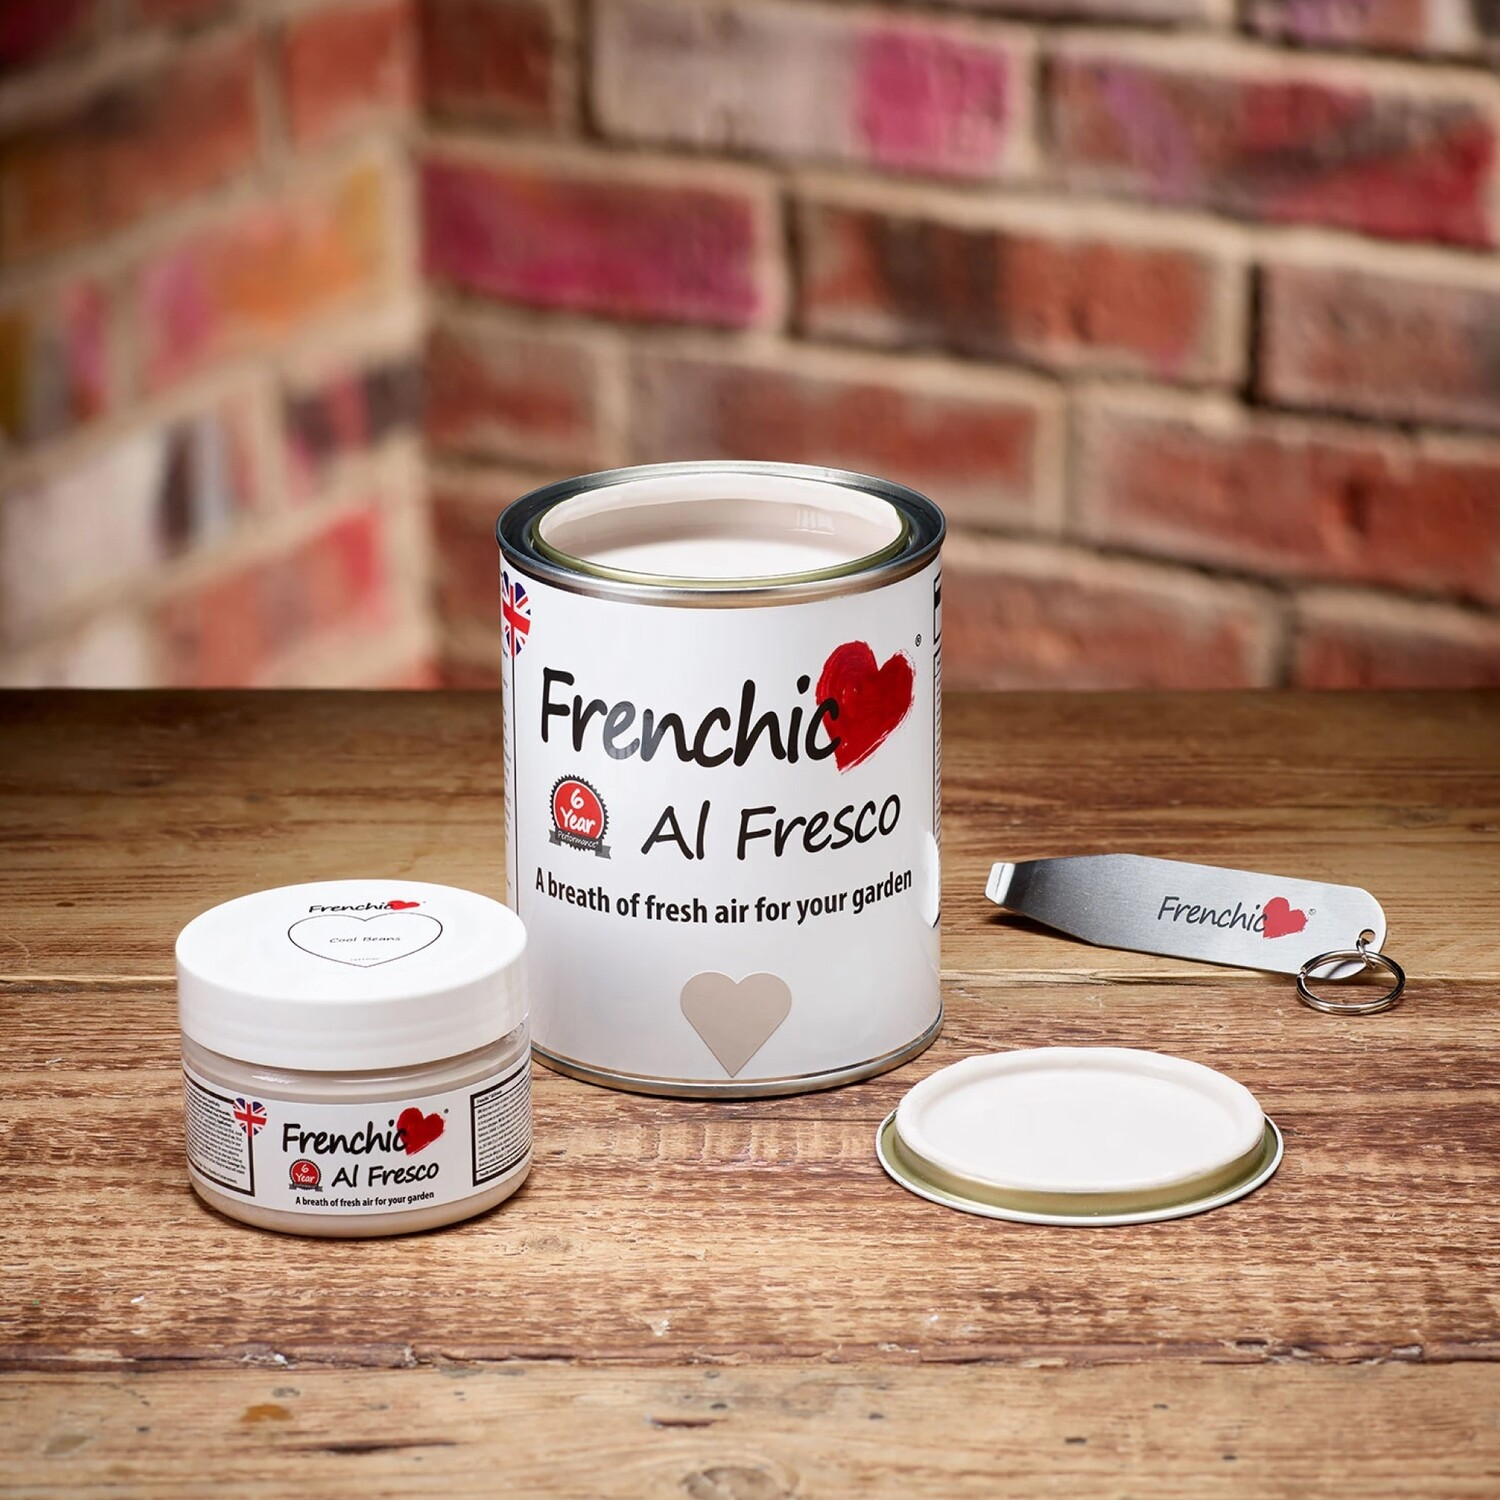 Frenchic Cool Beans